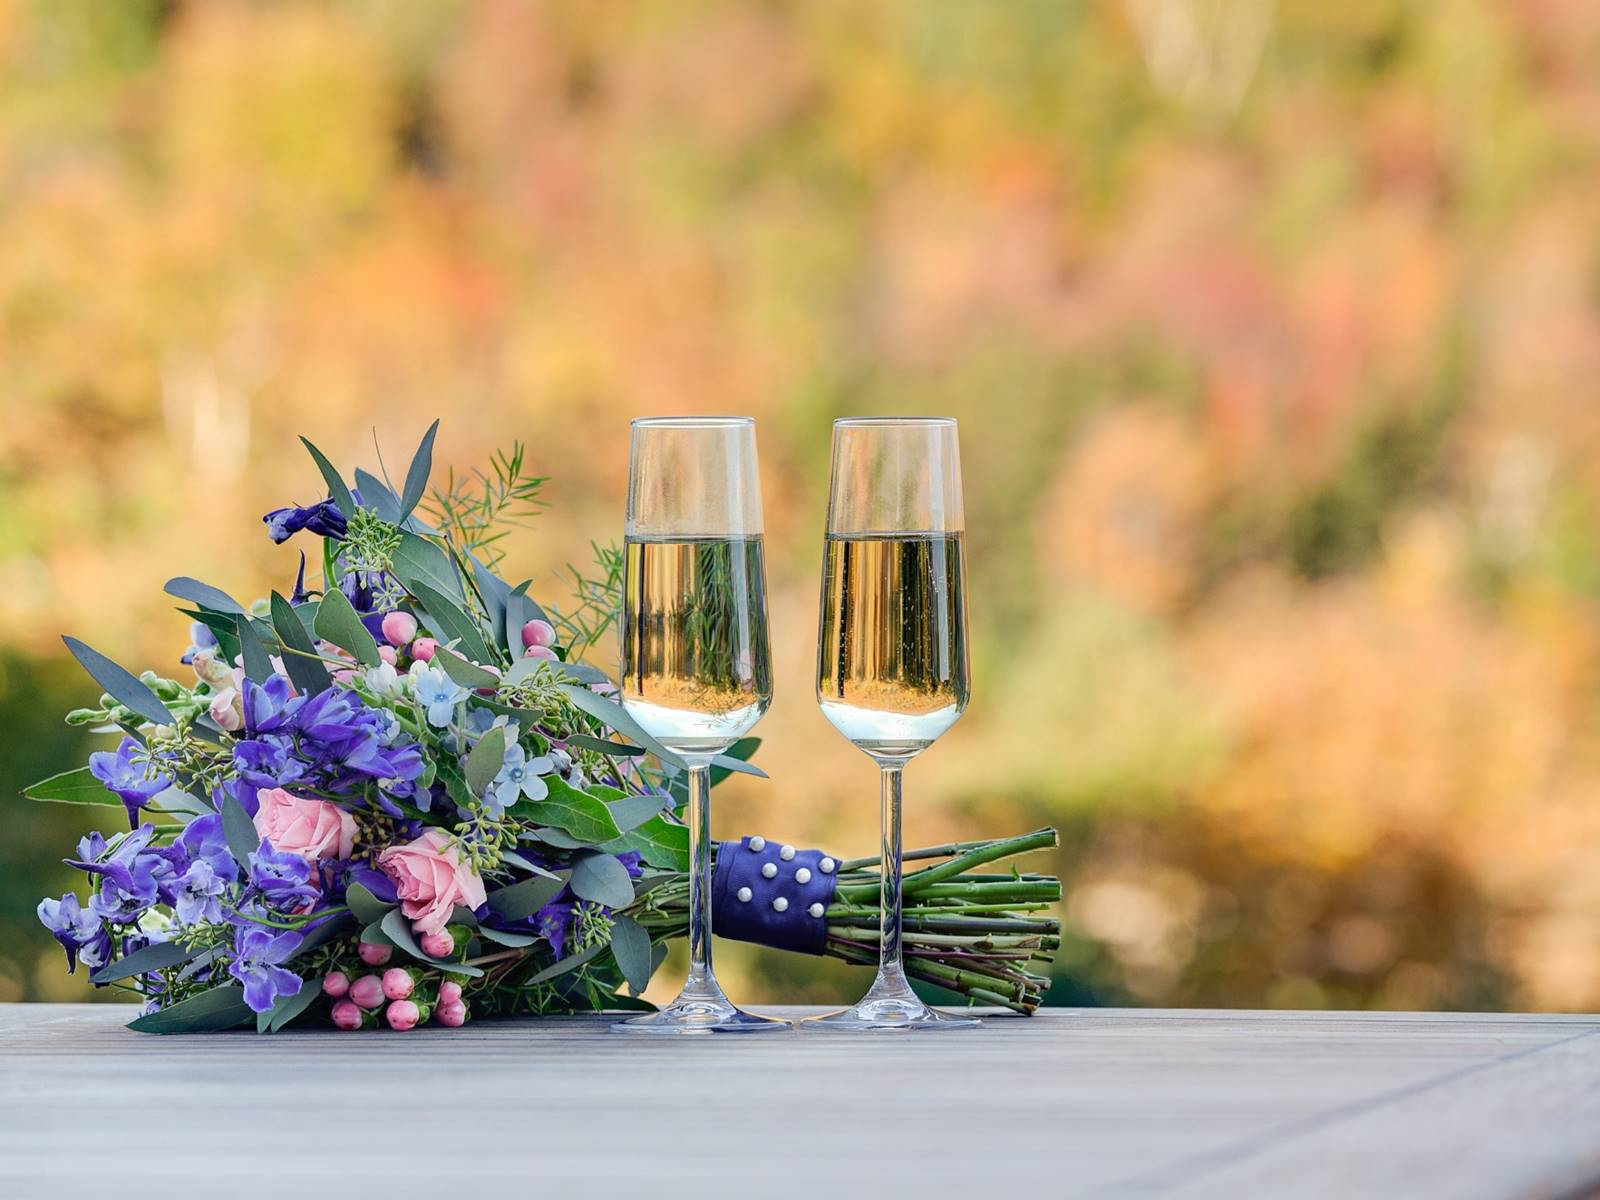 Champagne Flutes with Wedding Bouquet and Mt. Washington in the Background